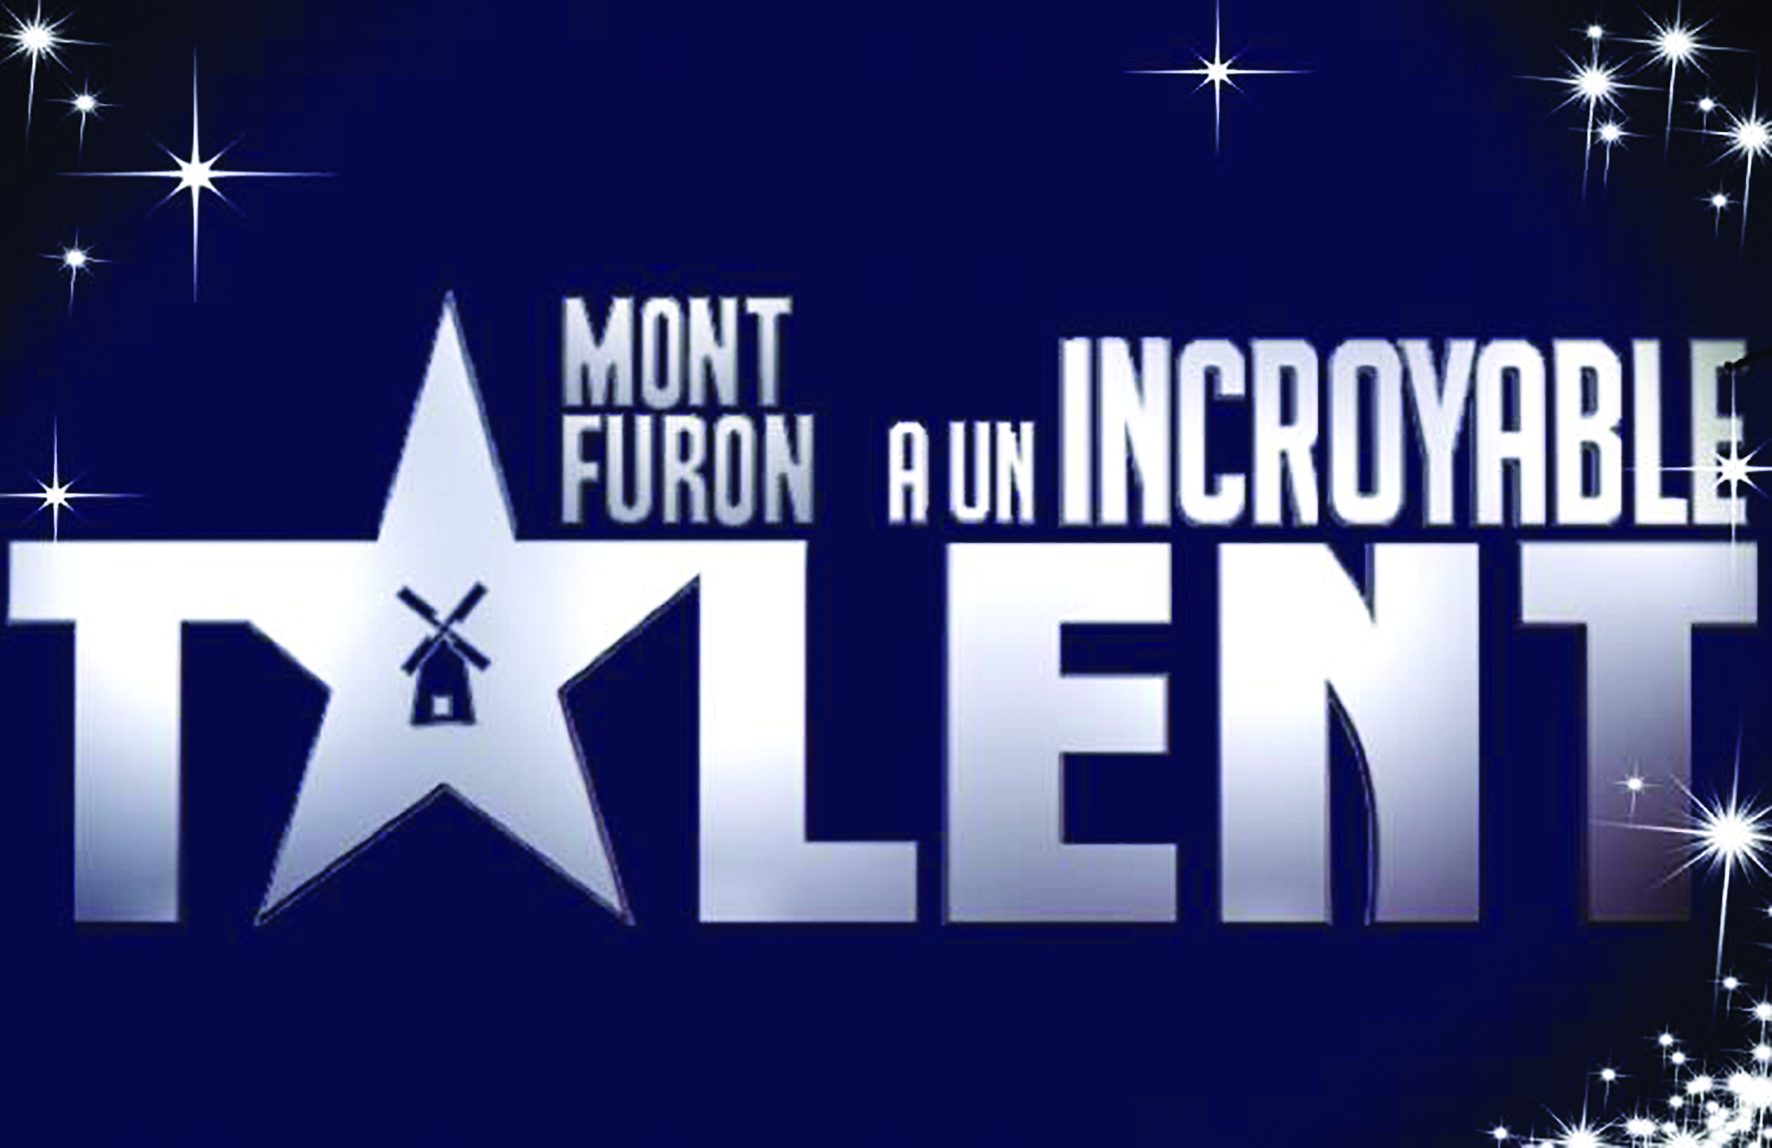 Monfuron a un incroyable talent, saison 2